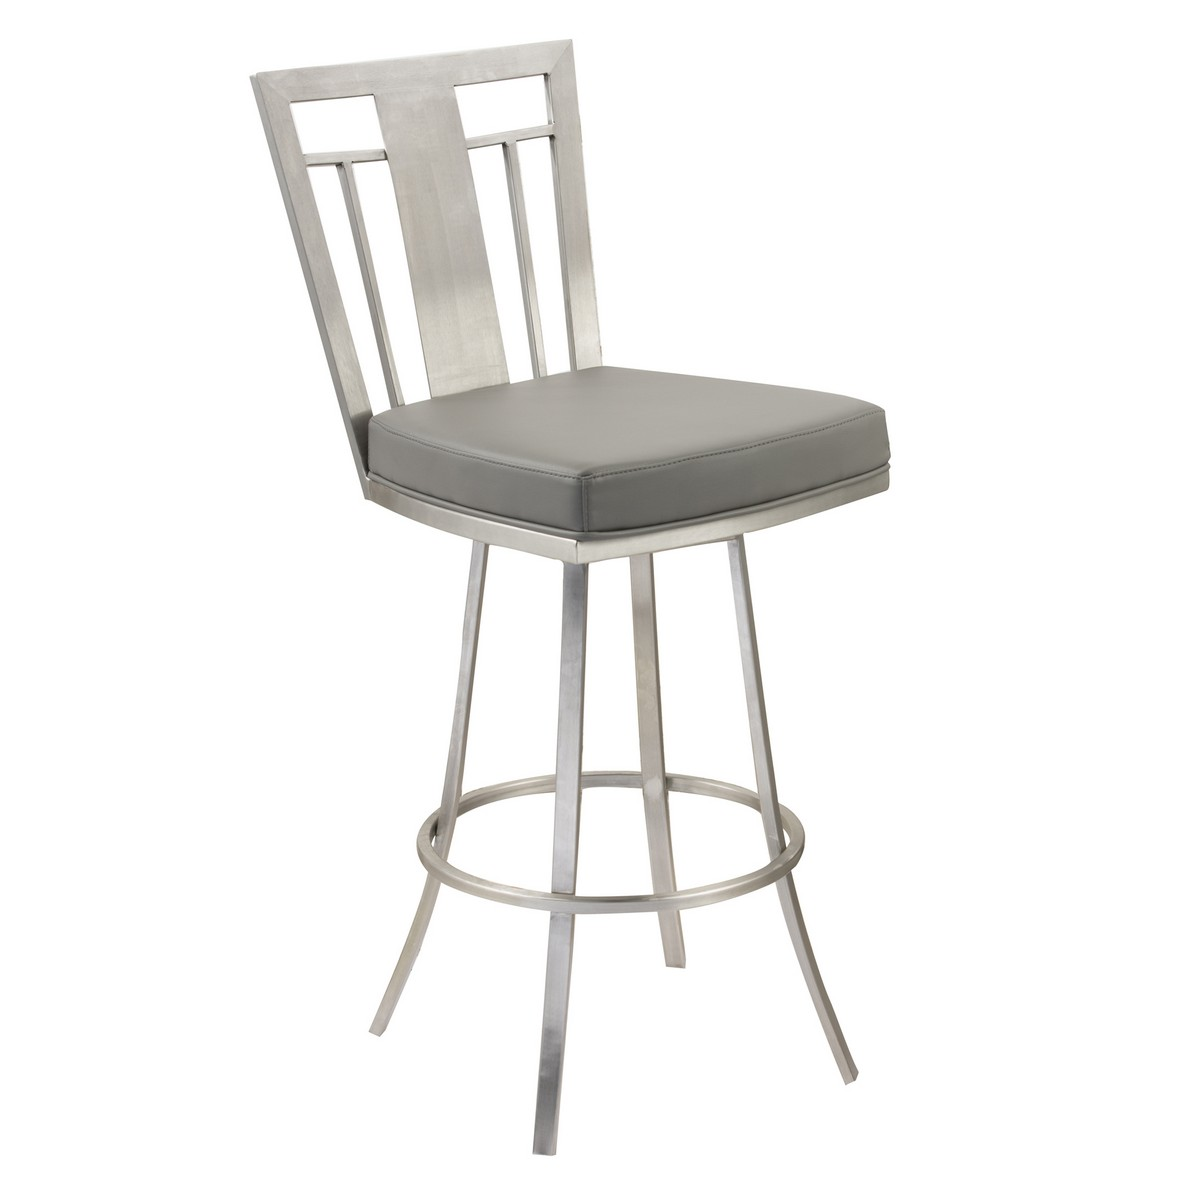 Armen Living Cleo 26-inch Modern Swivel Barstool In Gray and Stainless Steel